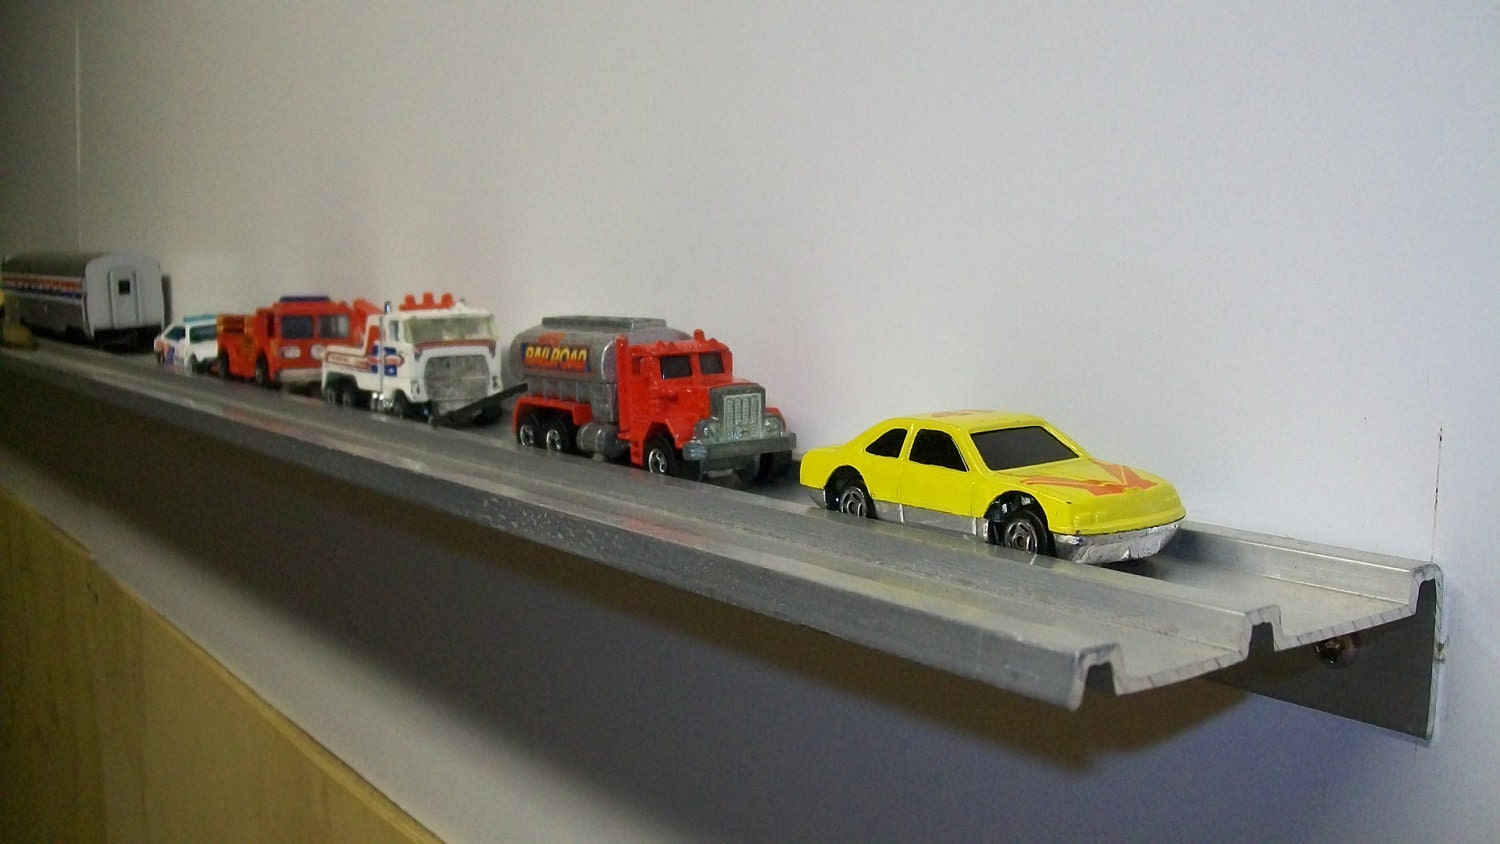 Toy Cars Holder Shelf : Display shelves for matchbox cars wall shelf diecast